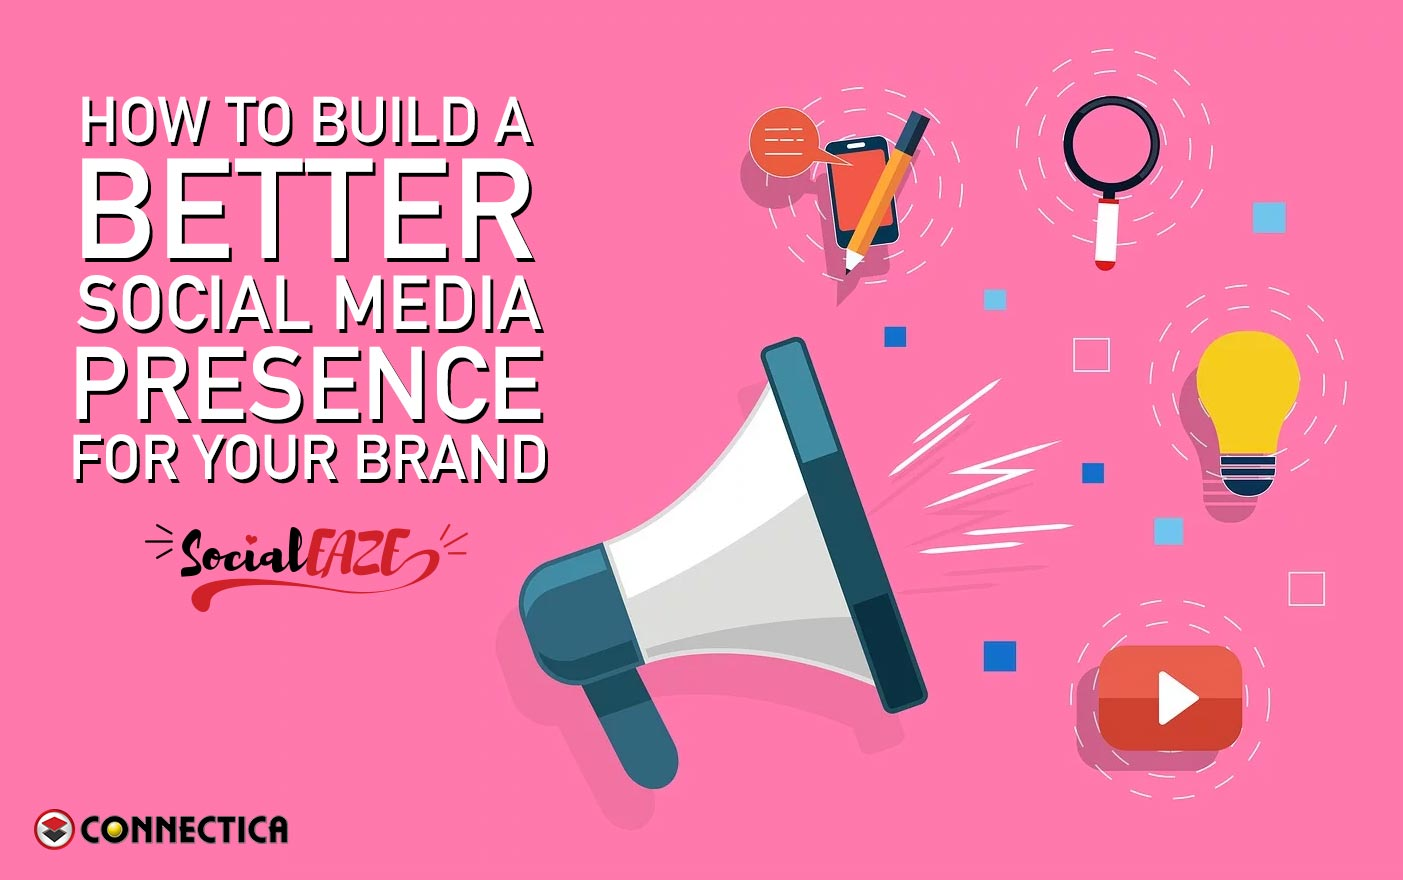 How To Build A Better Social Media Presence For Your Brand